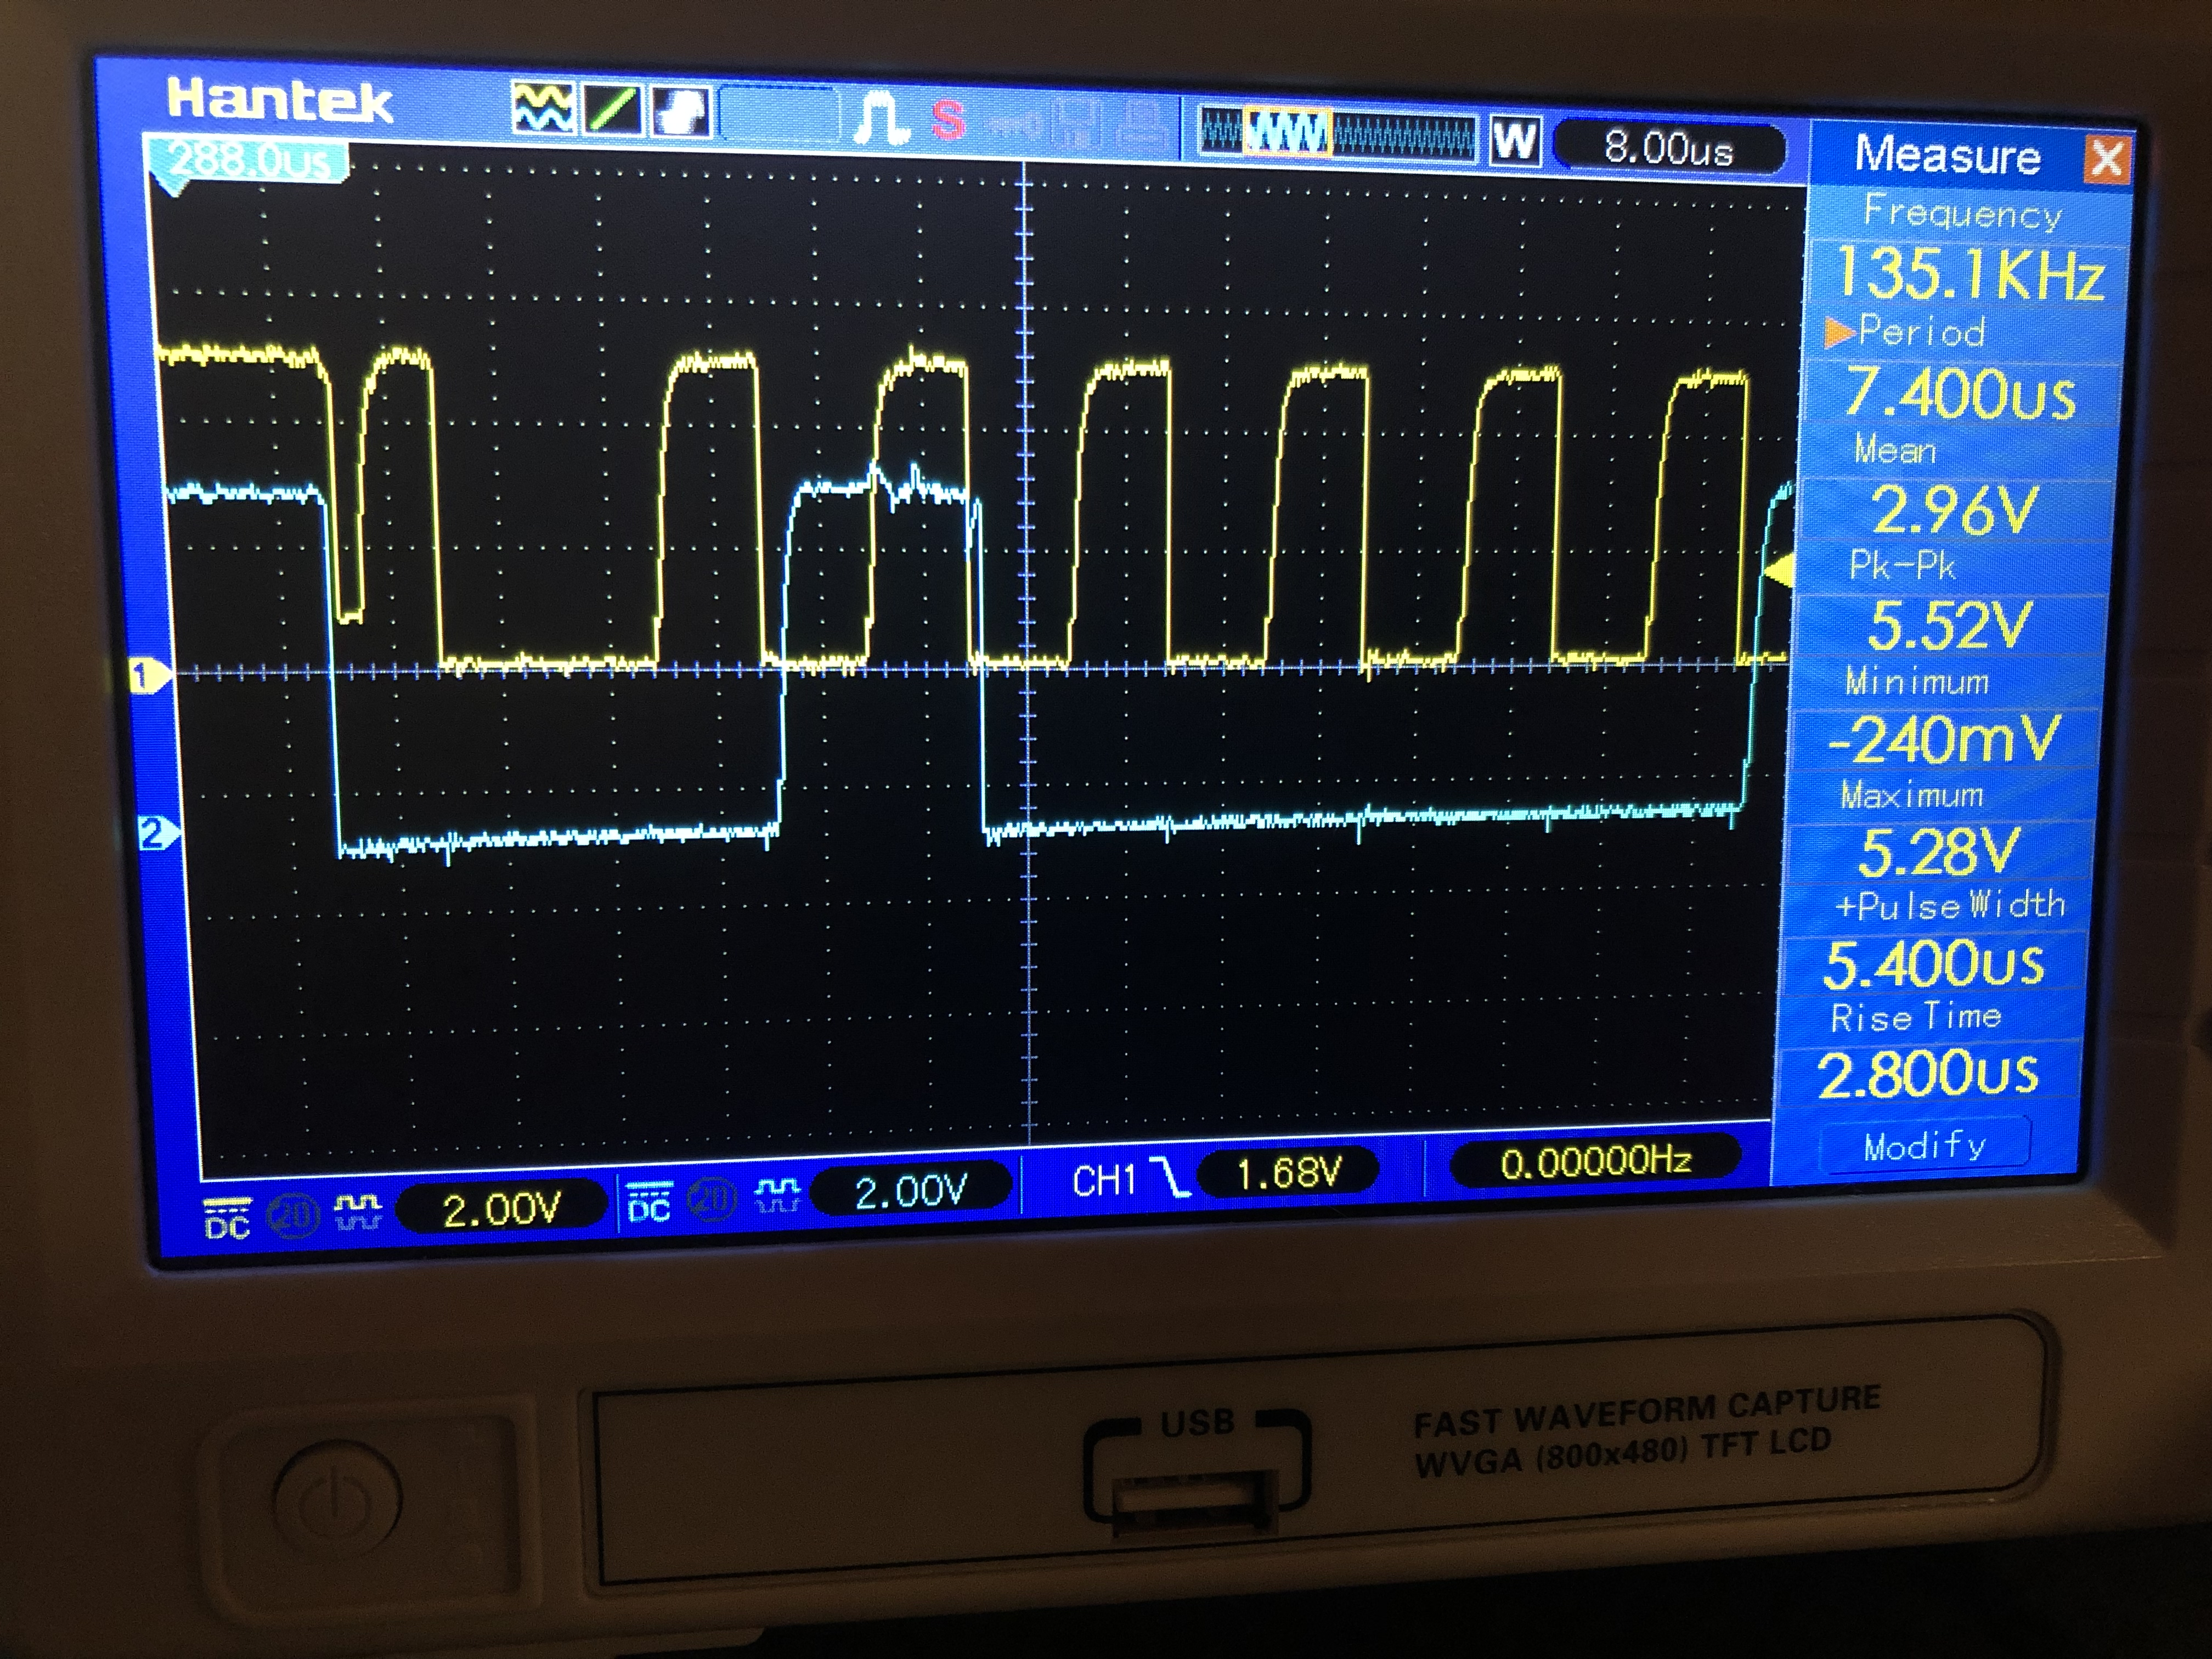 P82B96: Down-spike on the SCL line when SDA enters start